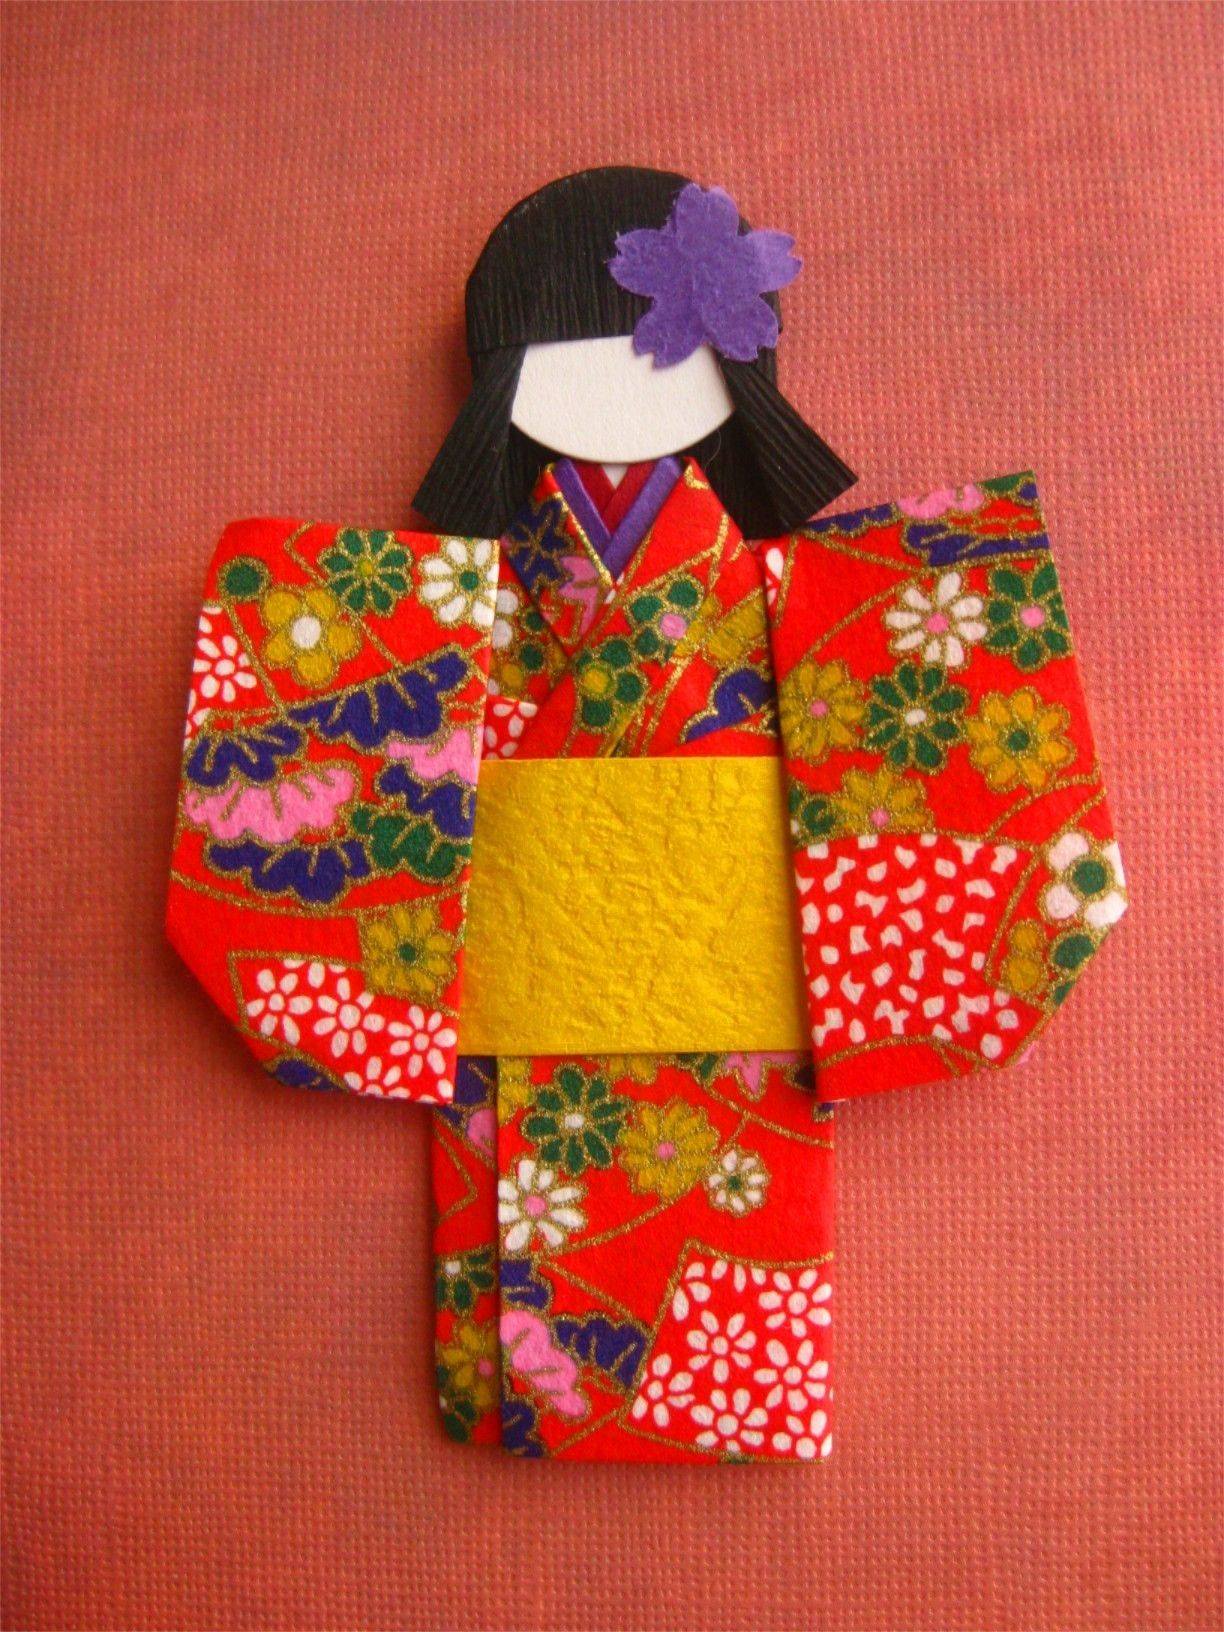 Japanese Arts and Crafts | Origami Paper Doll | Medonna ... - photo#32